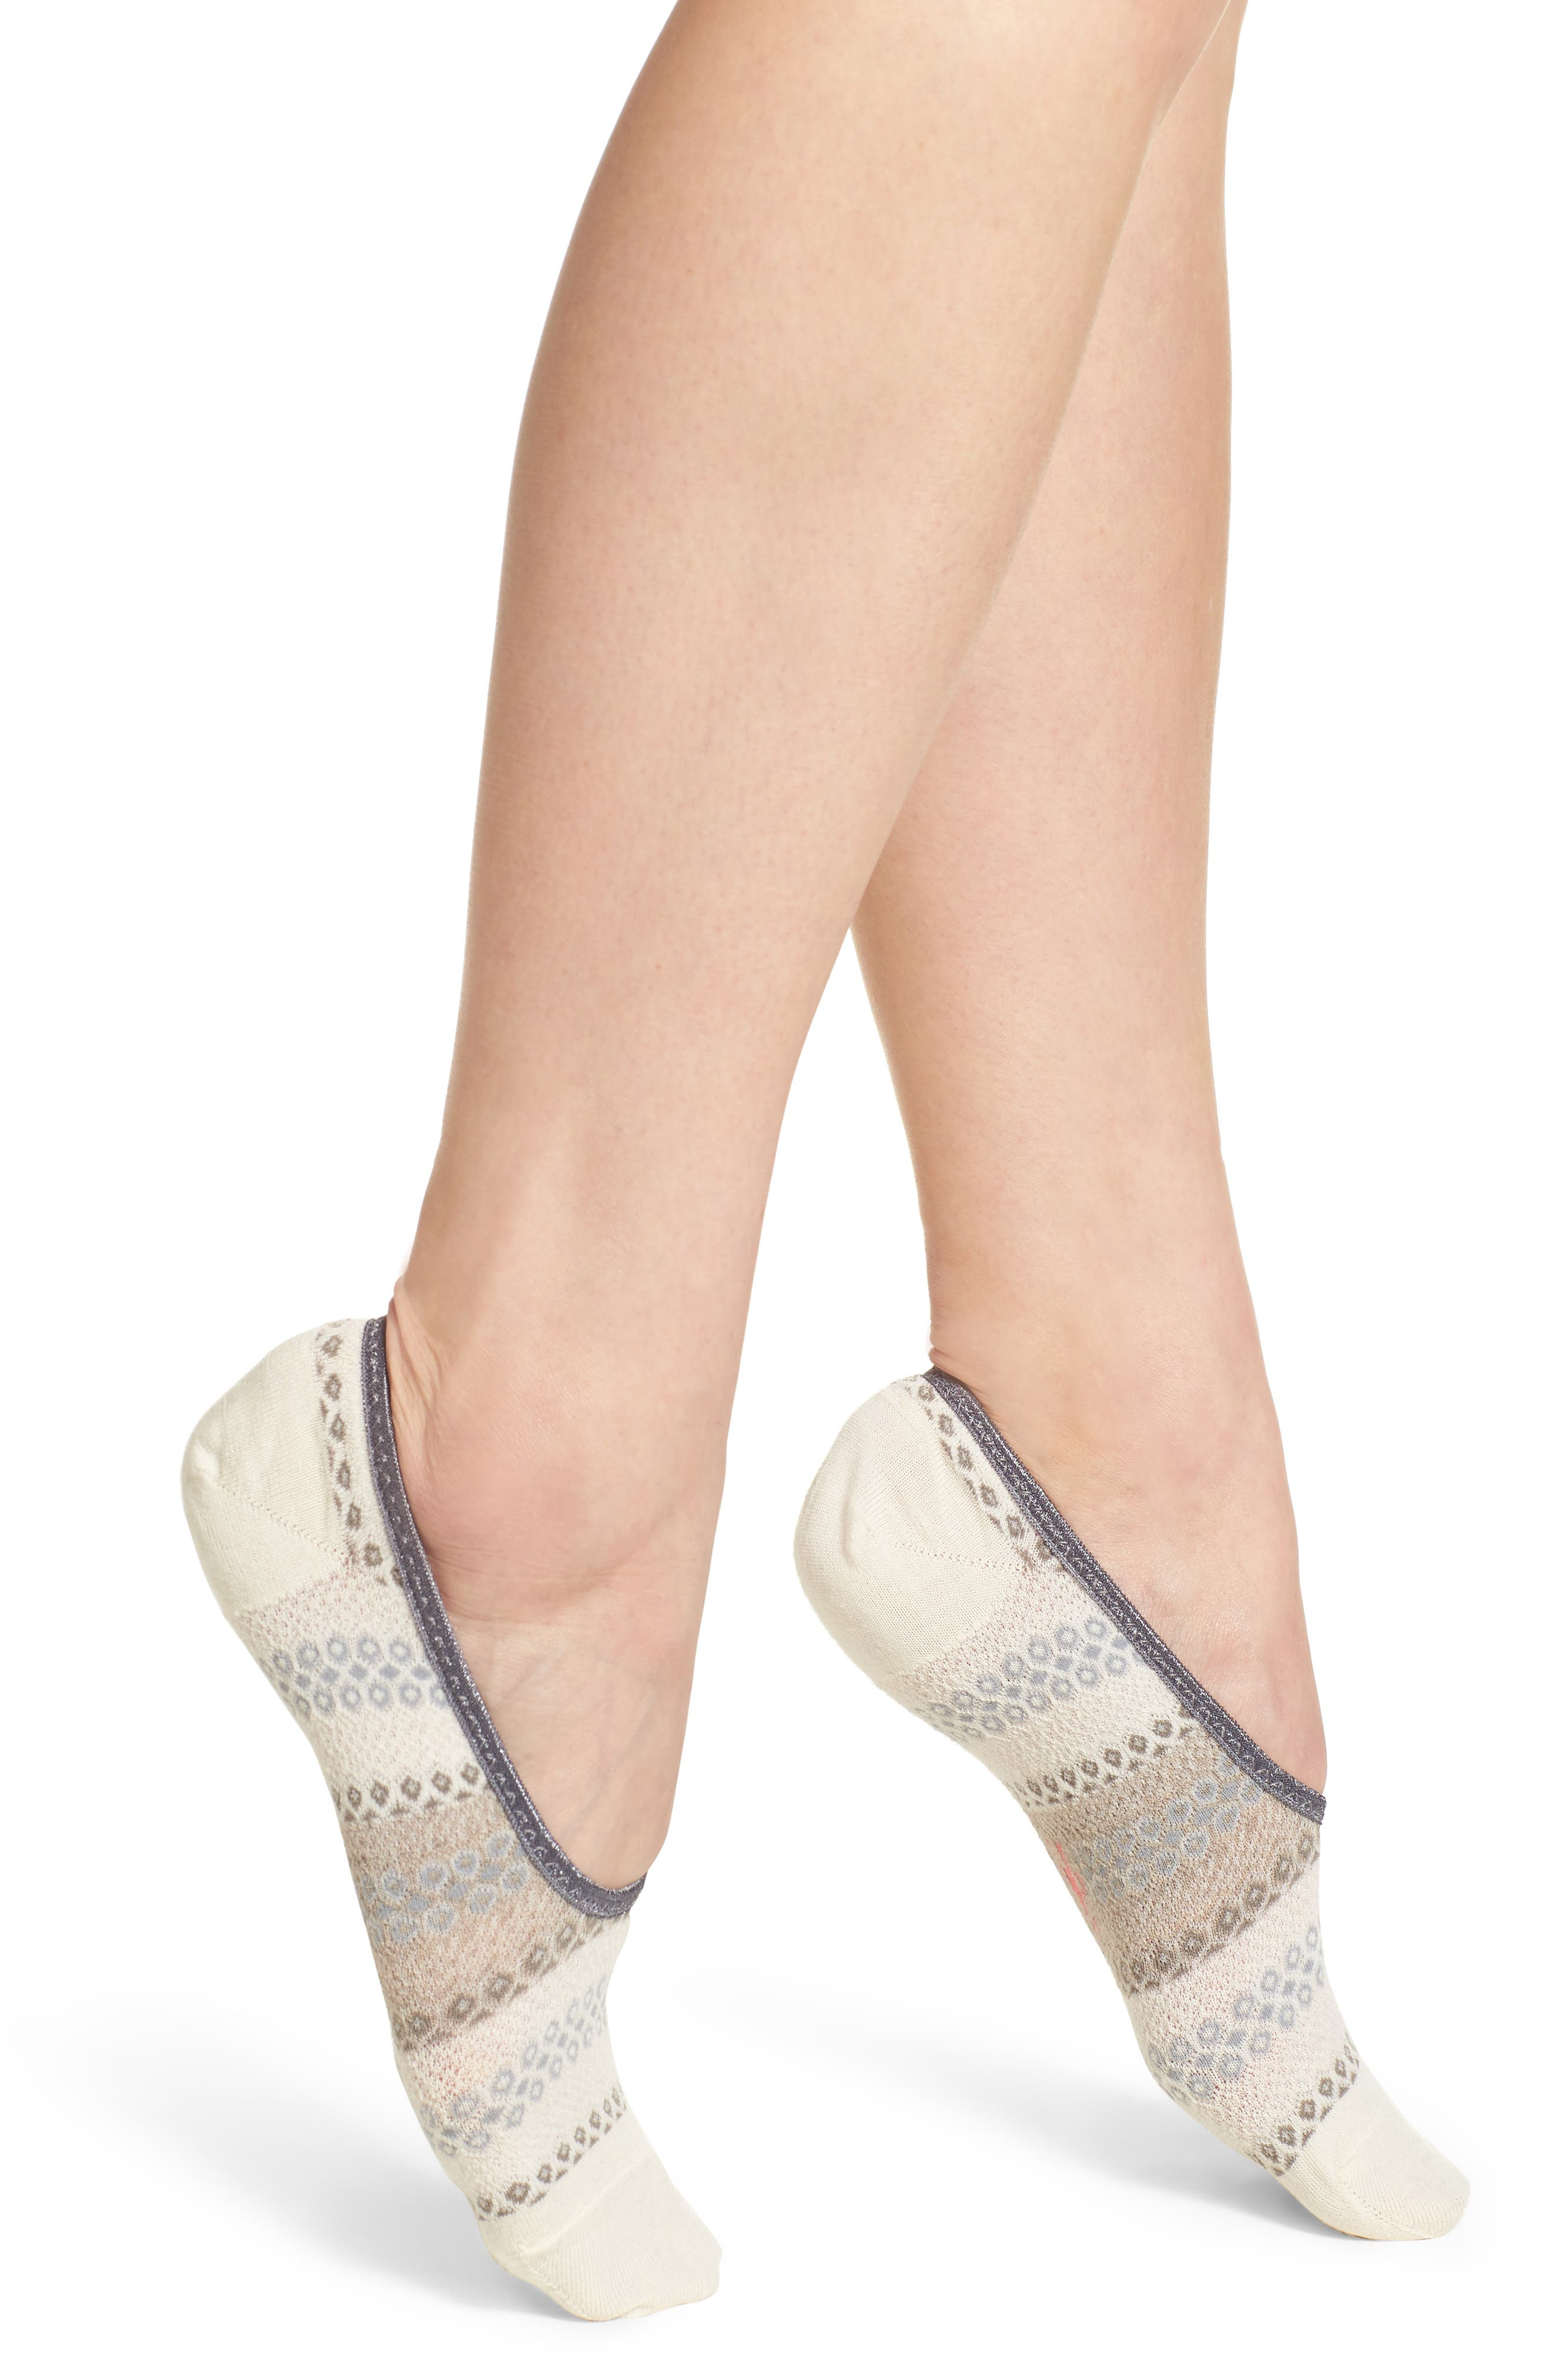 Beyond The Hive Hide & Seek No-Show Socks,                         Main,                         color, Natural